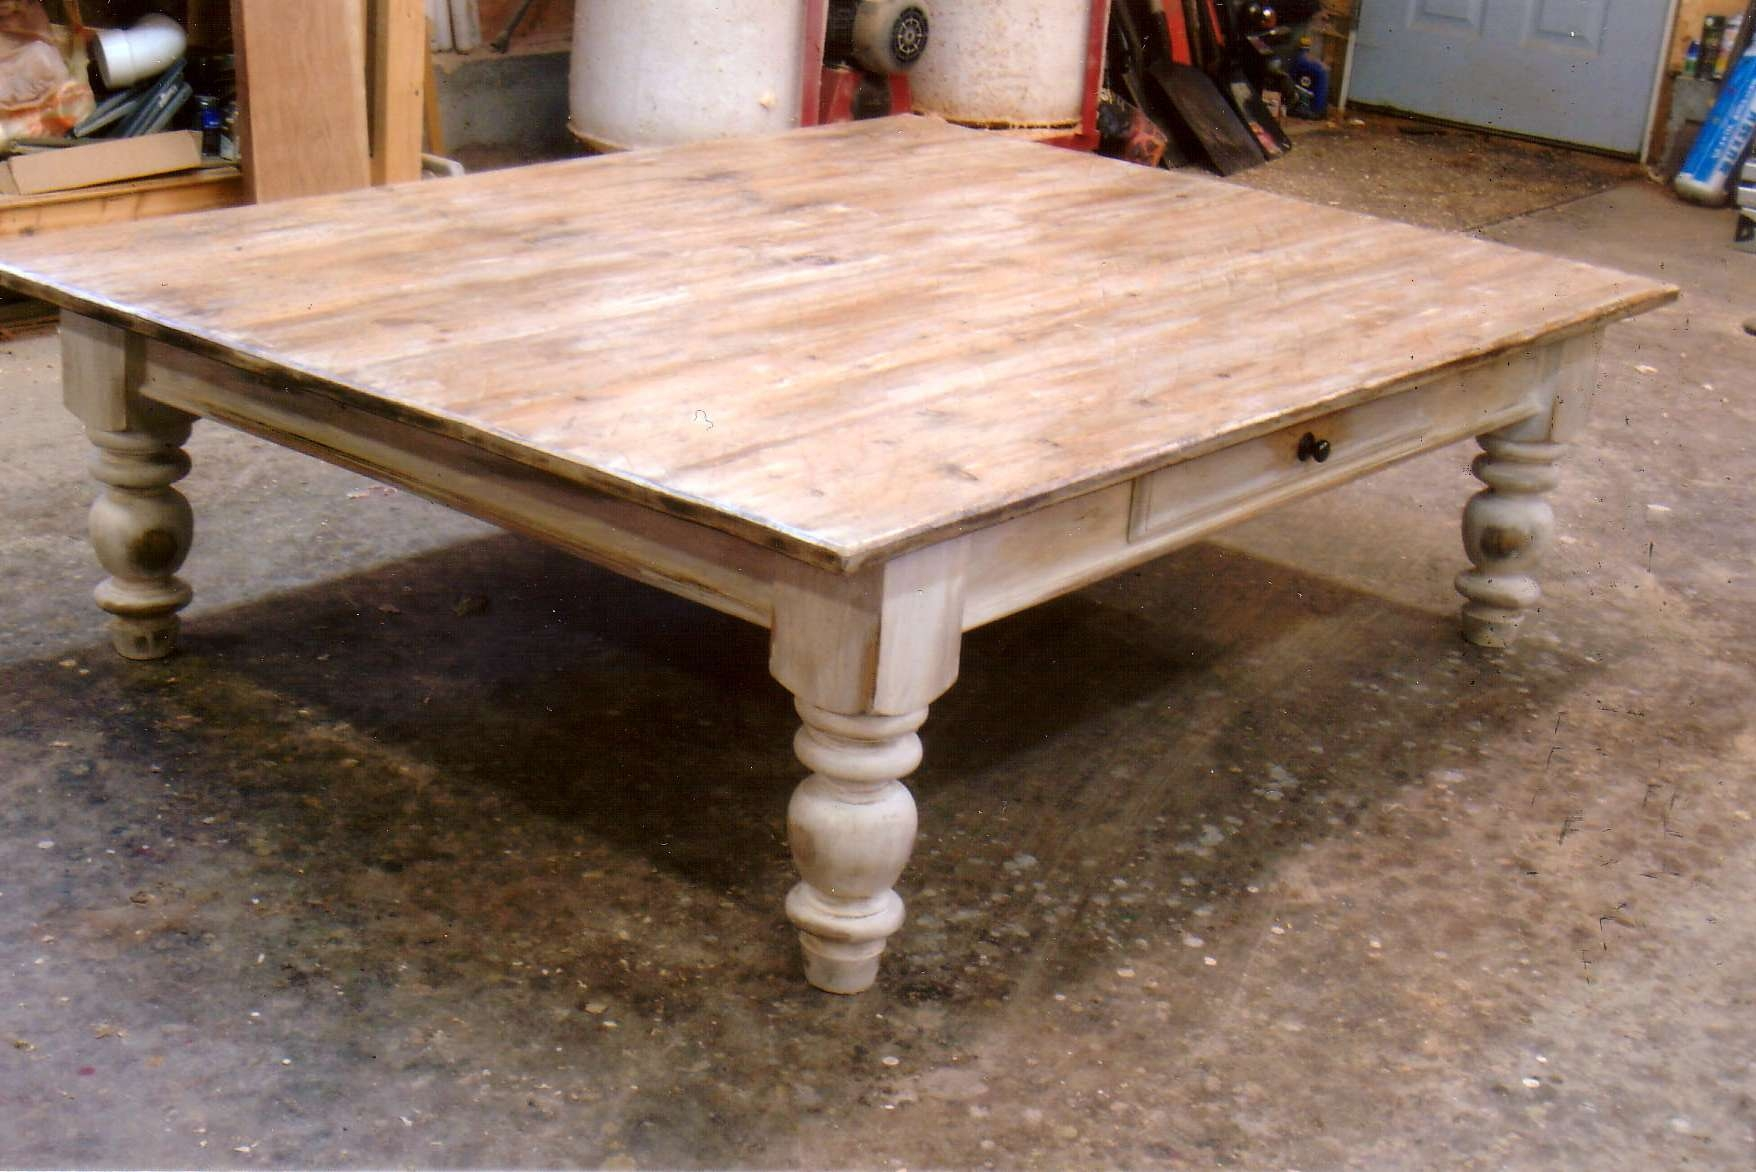 Most Recently Released Square Wooden Coffee Table Throughout Coffee Table : Fabulous Oversized Square Coffee Table Square Wood (View 7 of 20)